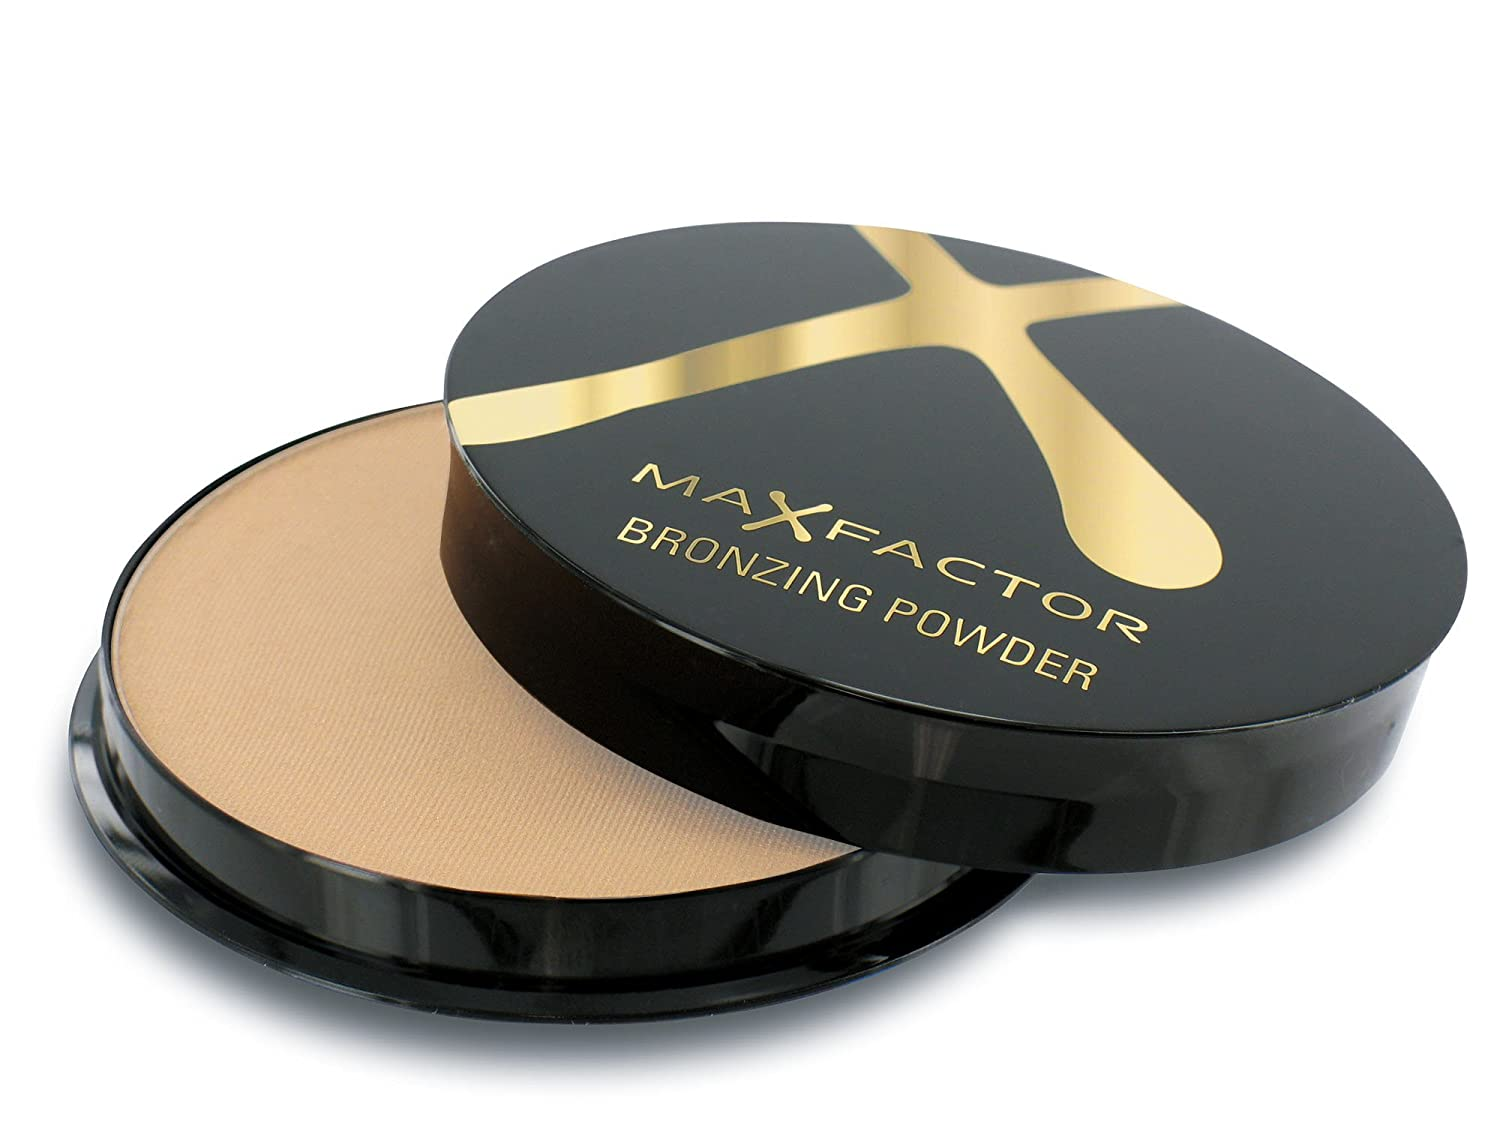 Max factor - Bronzing powder, maquillaje en polvo, 01 oro Procter and Gamble Spain 3410677